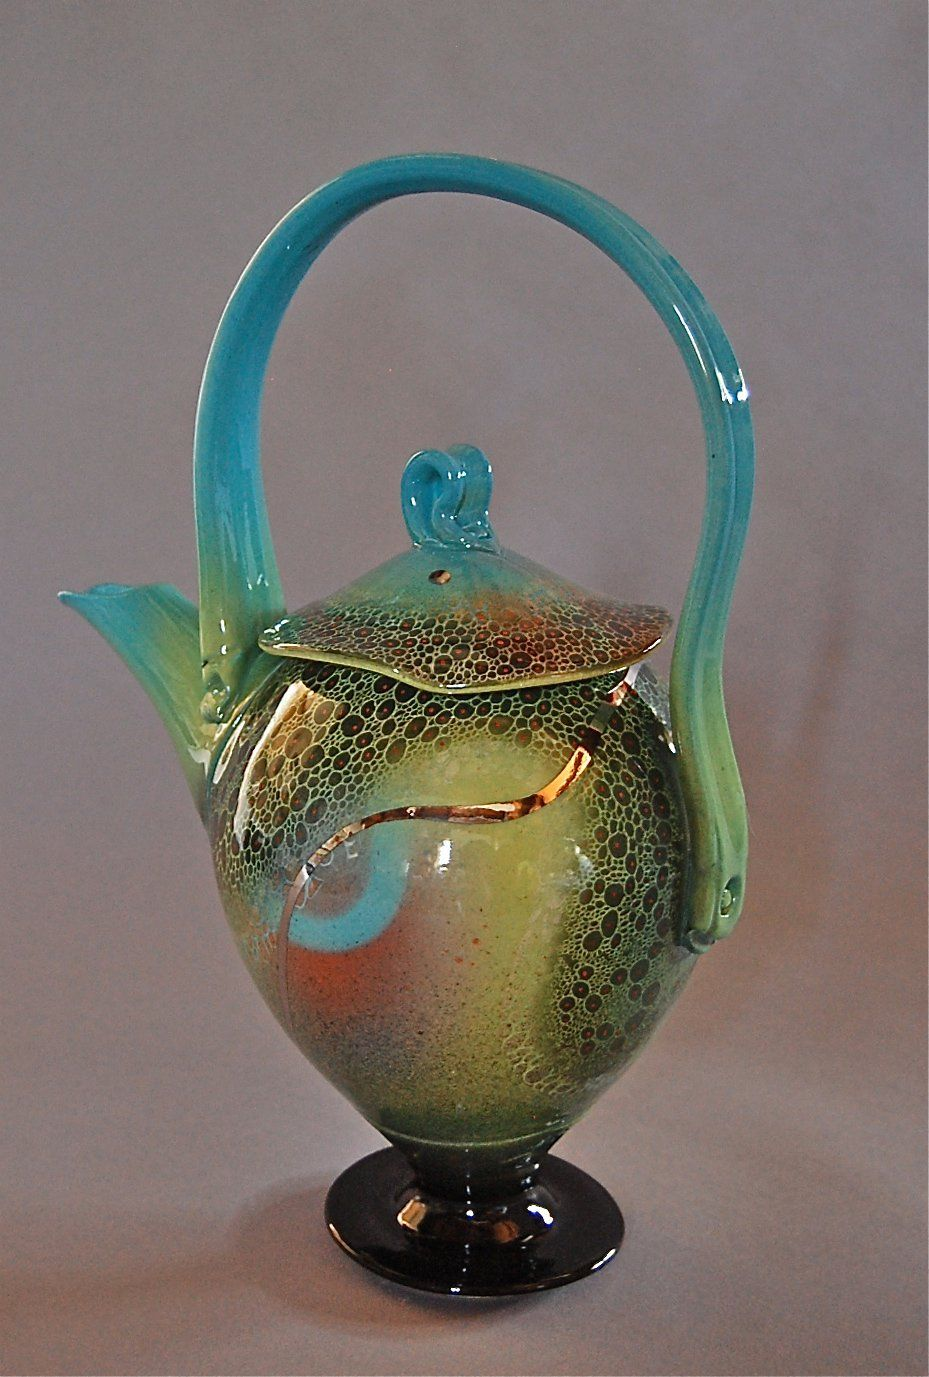 teapot made by adrian sandstrom  teapots  tea cups  pinterest  by - teapot made by adrian sandstrom